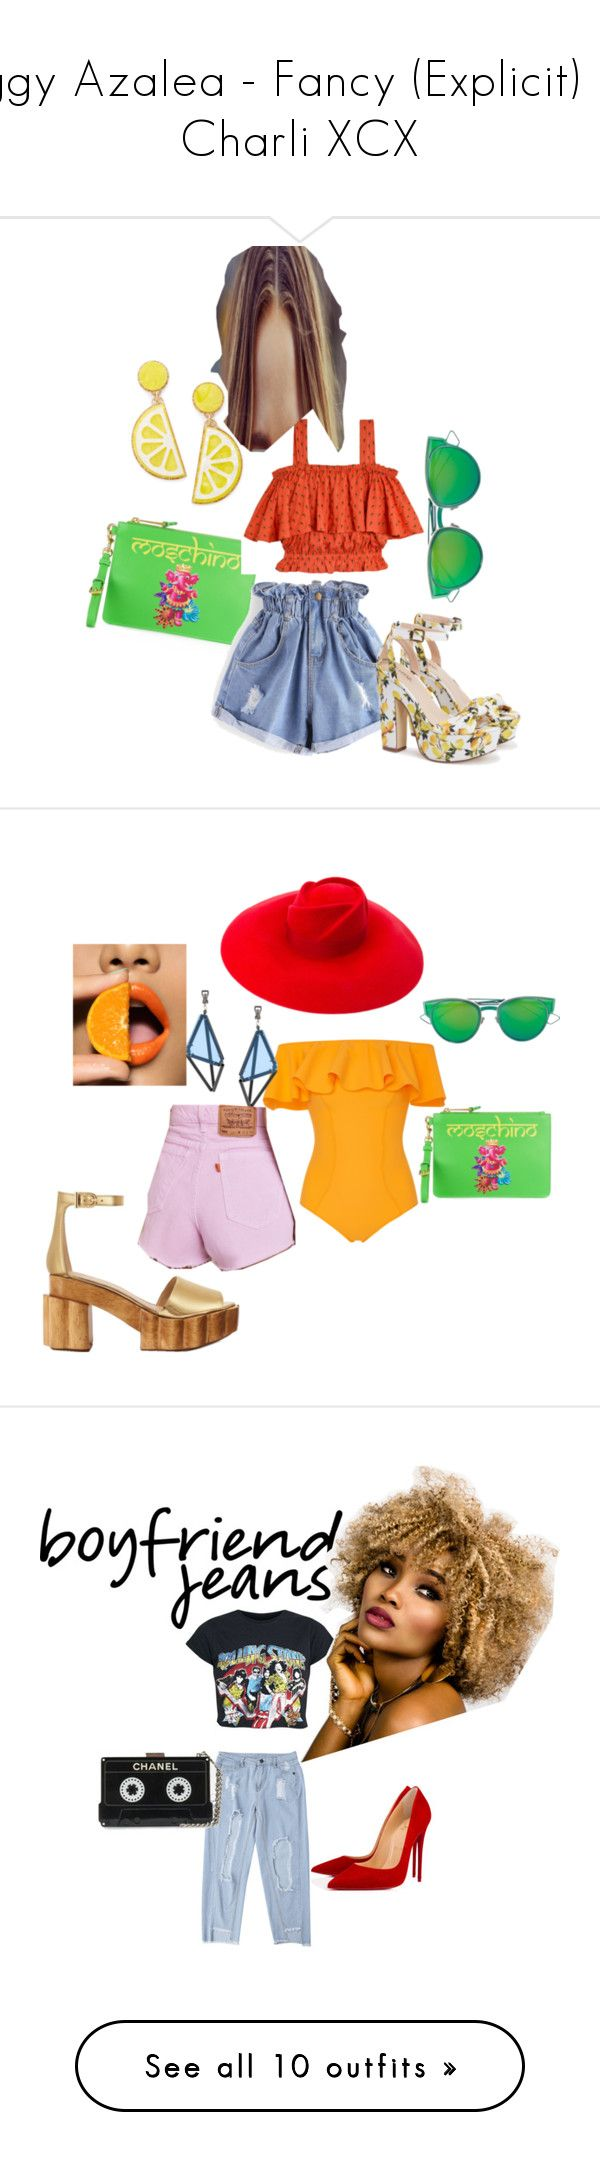 """""""Iggy Azalea - Fancy (Explicit) ft. Charli XCX"""" by peace-love-and-soul ❤ liked on Polyvore featuring Moschino, Samantha Pleet, WithChic, Celebrate Shop, Christian Dior, Gucci, Lisa Marie Fernandez, Issey Miyake, Urban Renewal and Tory Burch"""